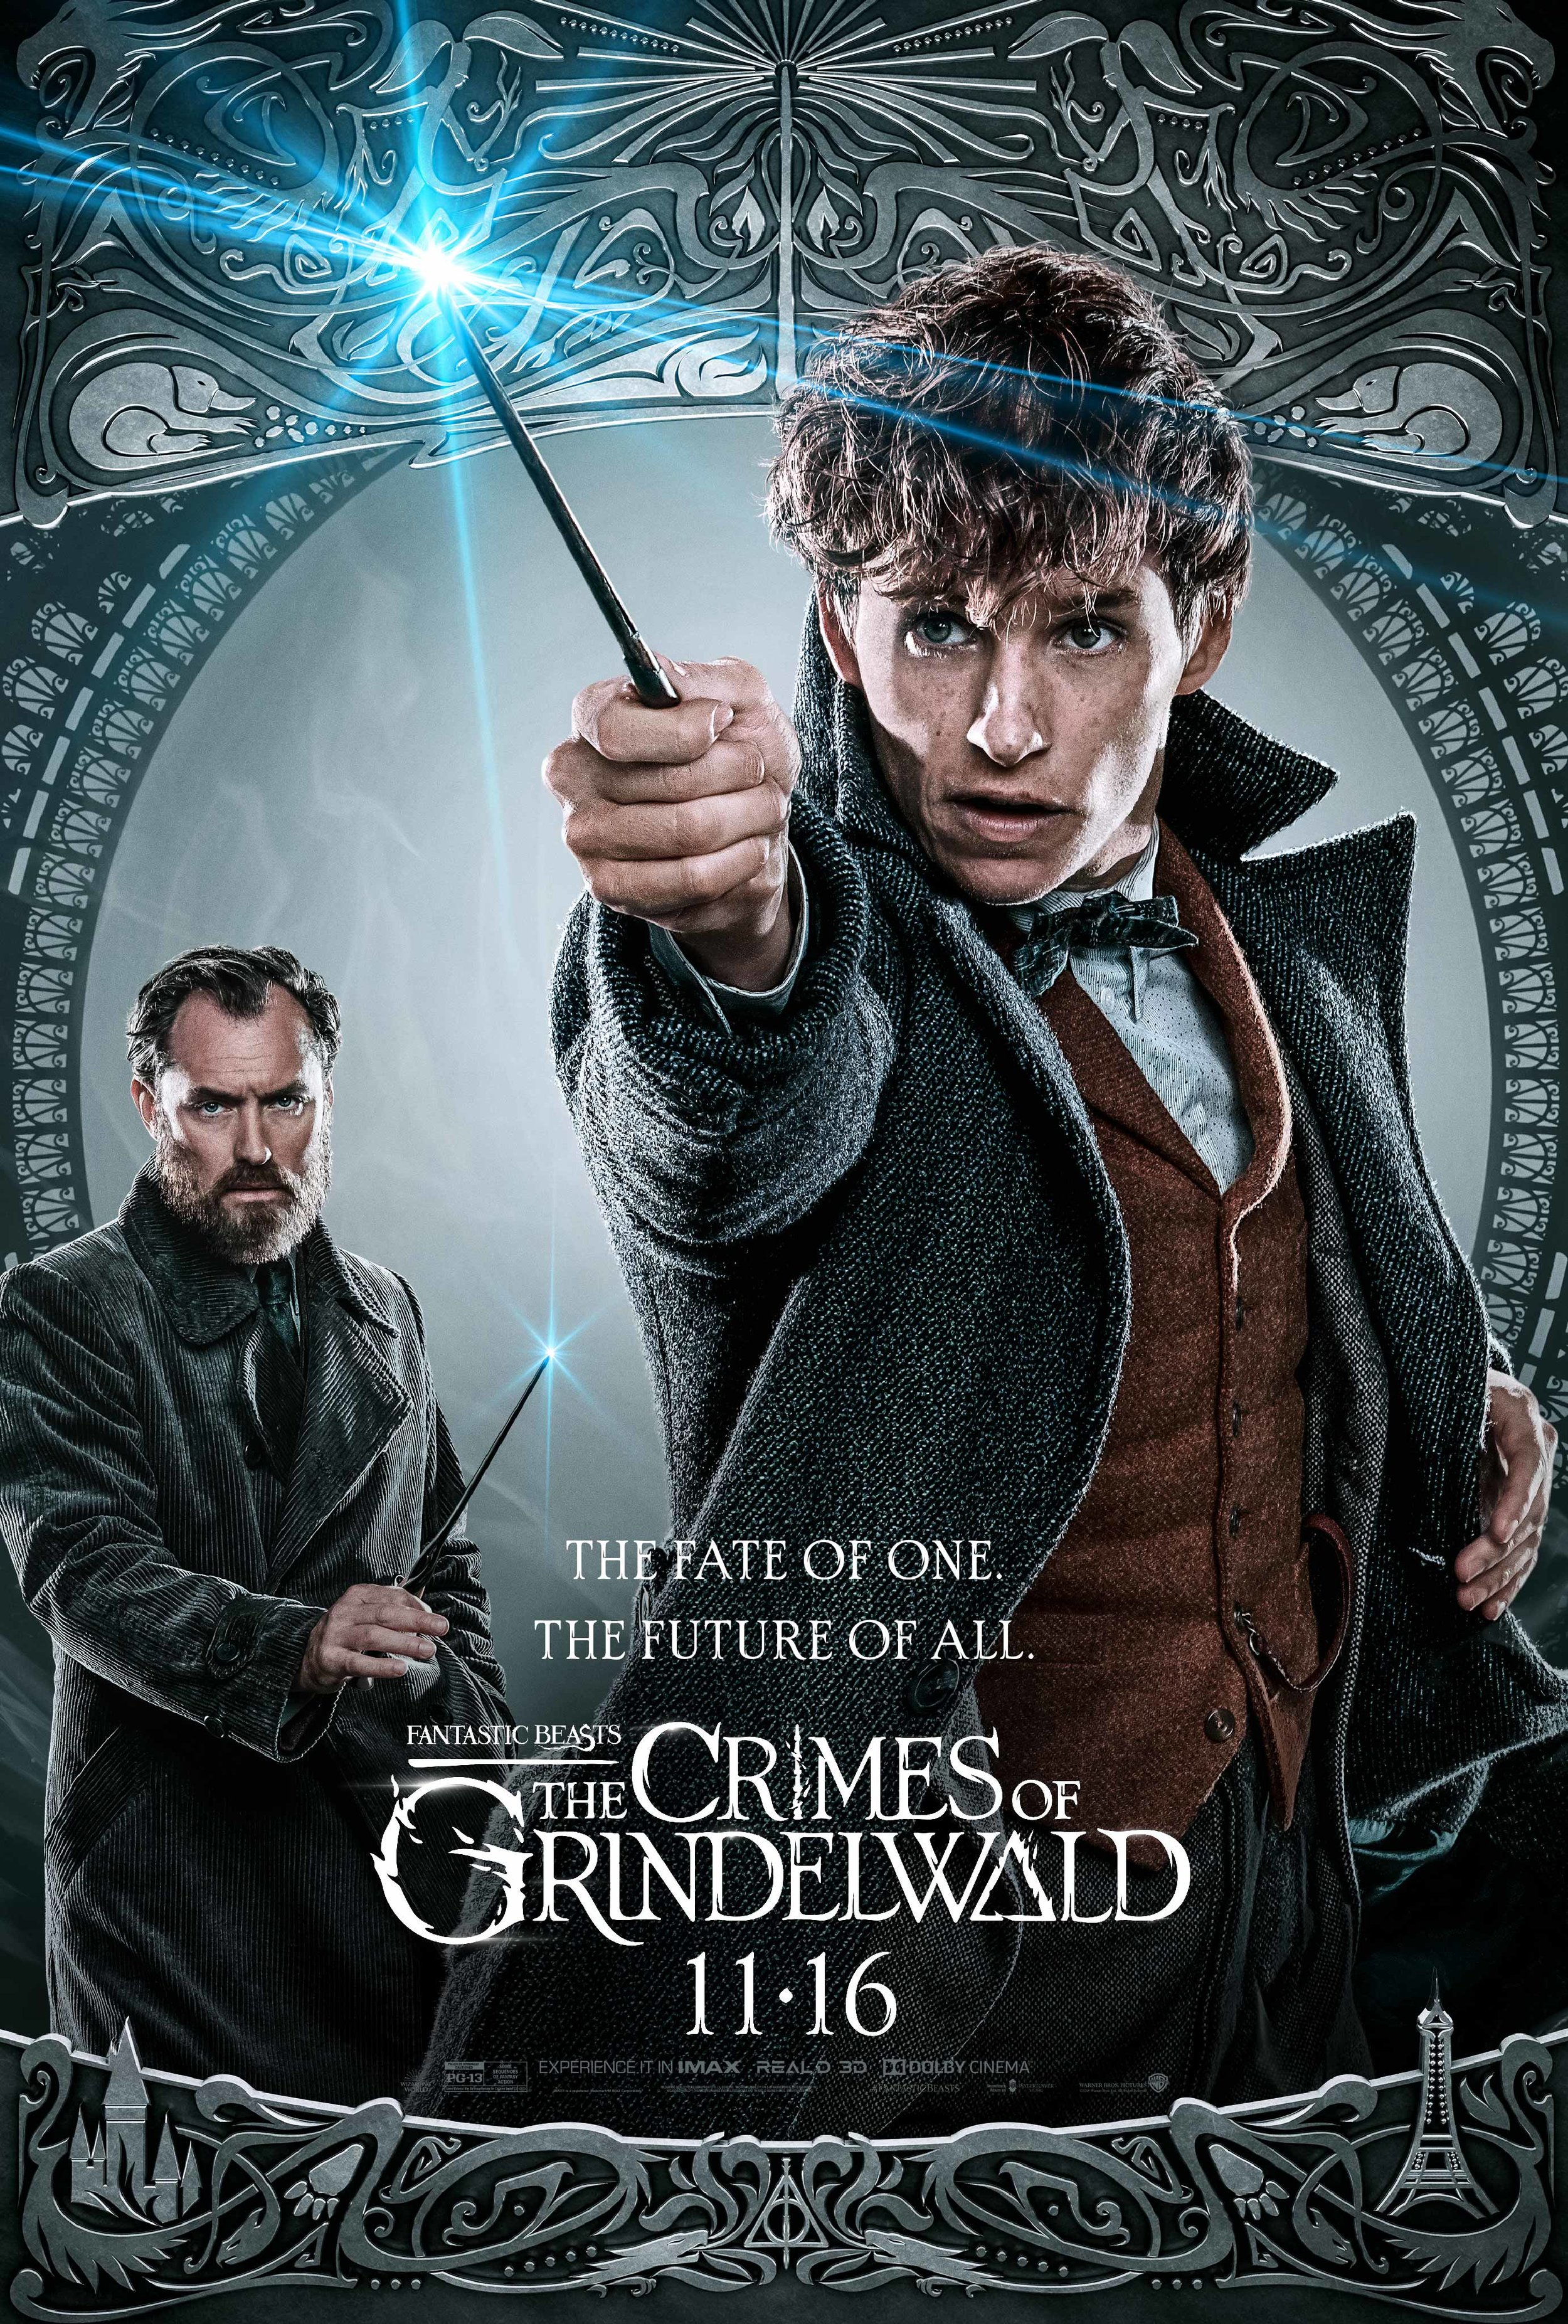 Fantastic Beasts: The Crimes of Grindelwald (2018) - Directed by: David YatesStarring: Eddie Redmanyne, Johnny Depp, Zoe Krzvitz,Ezra Miller, Katherine Waterston, Dan Fogler, Jude Law, Brontis JodorowskyRated: PG-13 for Some Sequences of Fantasy ActionRunning Time: 2 h 14 mTMM Score: 2.5 stars out of 5STRENGTHS: Production Design, Special Effects, Some ActingWEAKNESSES: Jumbled Story, Fan Service Over Substance